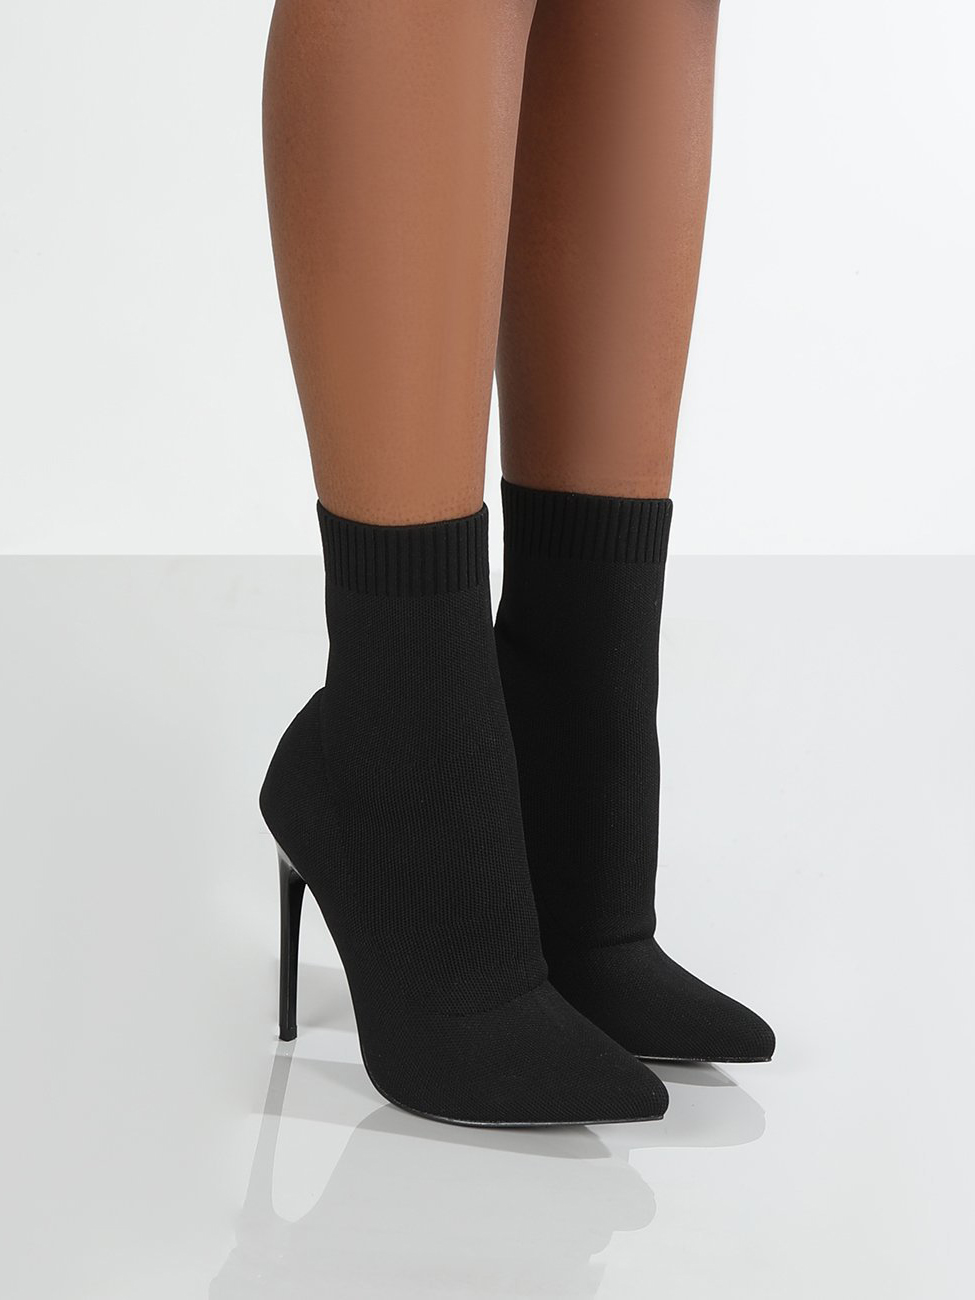 New Point Toe Knitting Stiletto Ankle Boots